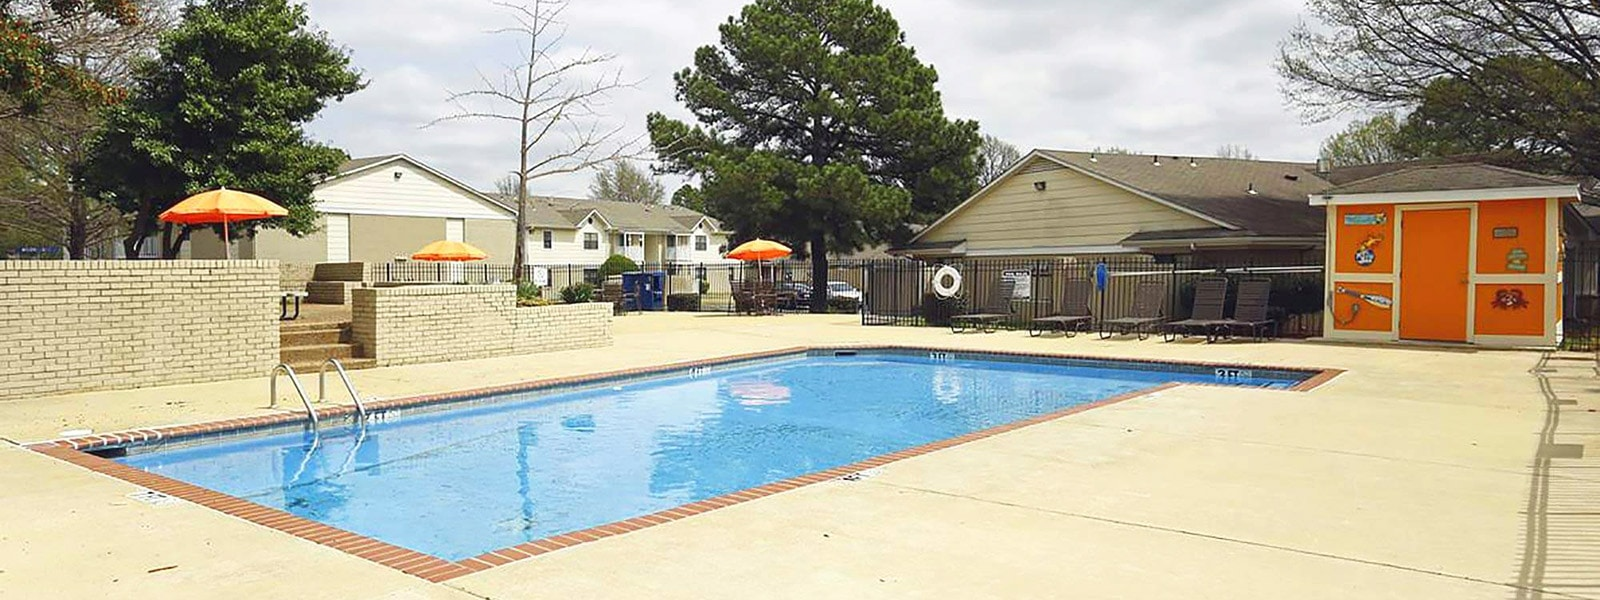 Enclave Apartment Homes in Memphis, TN